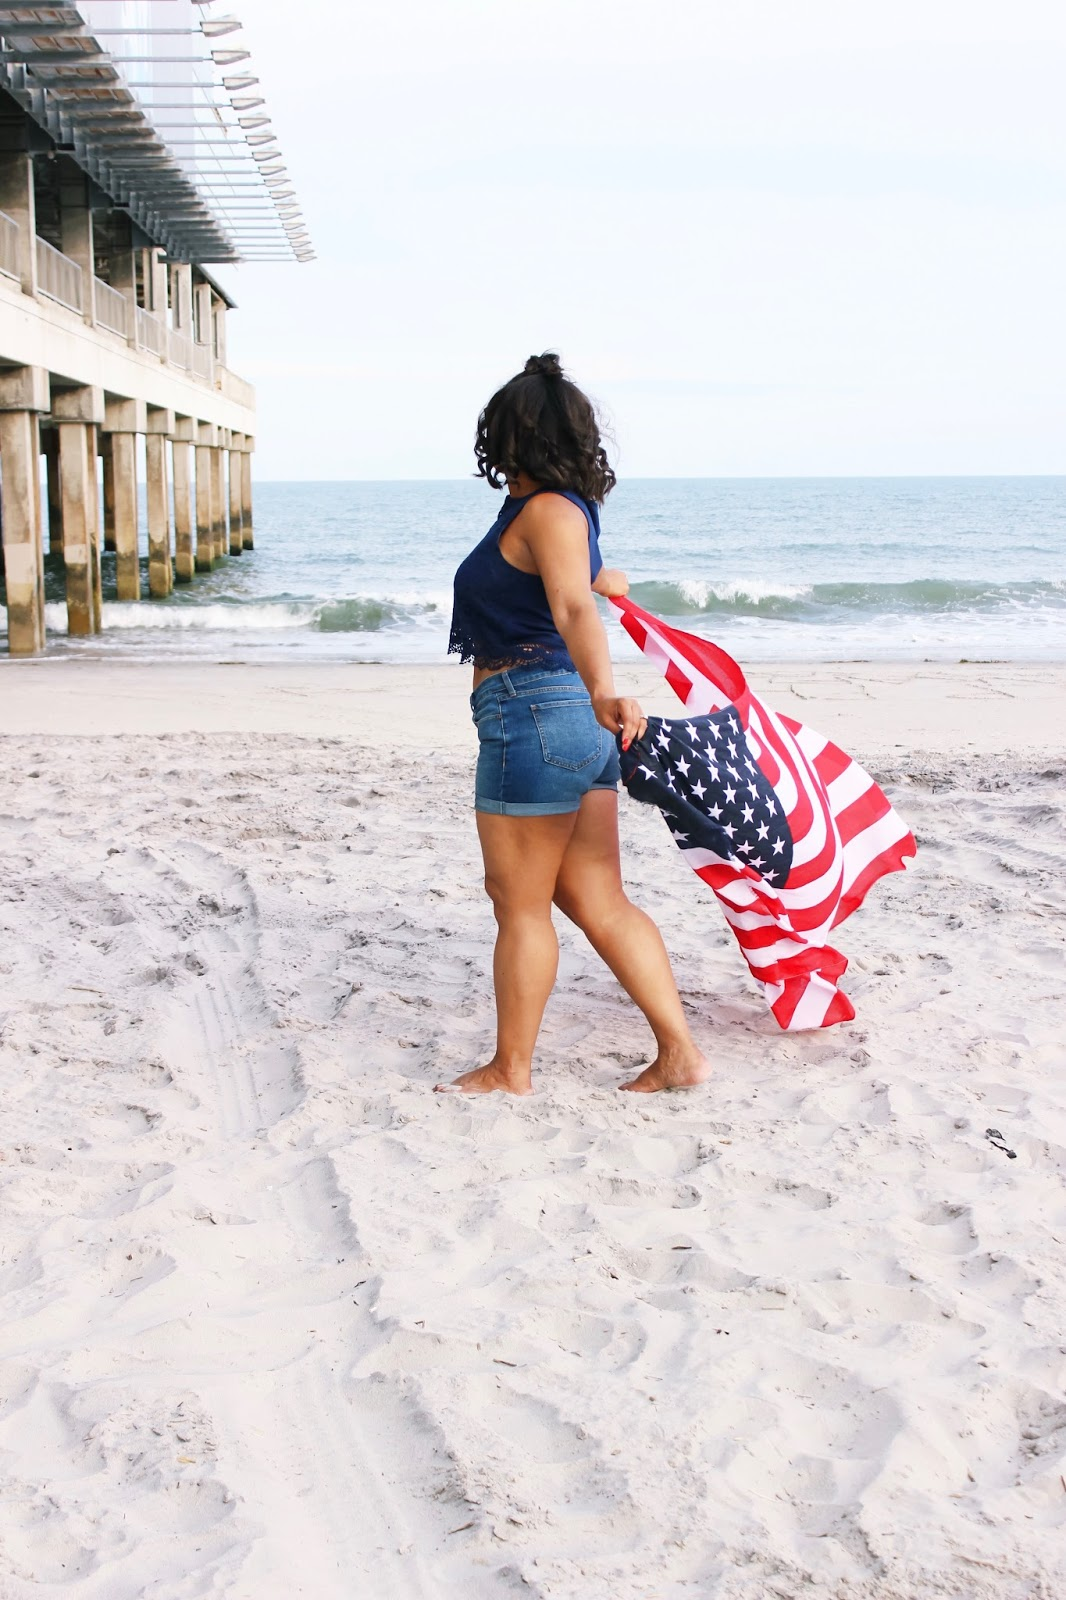 Happy 4th Of July, red white and blue, beach, fourth of july weekend, atlantic city beaches, summer, american flag, summer looks, oldnavy clothes, god bless america, independence day